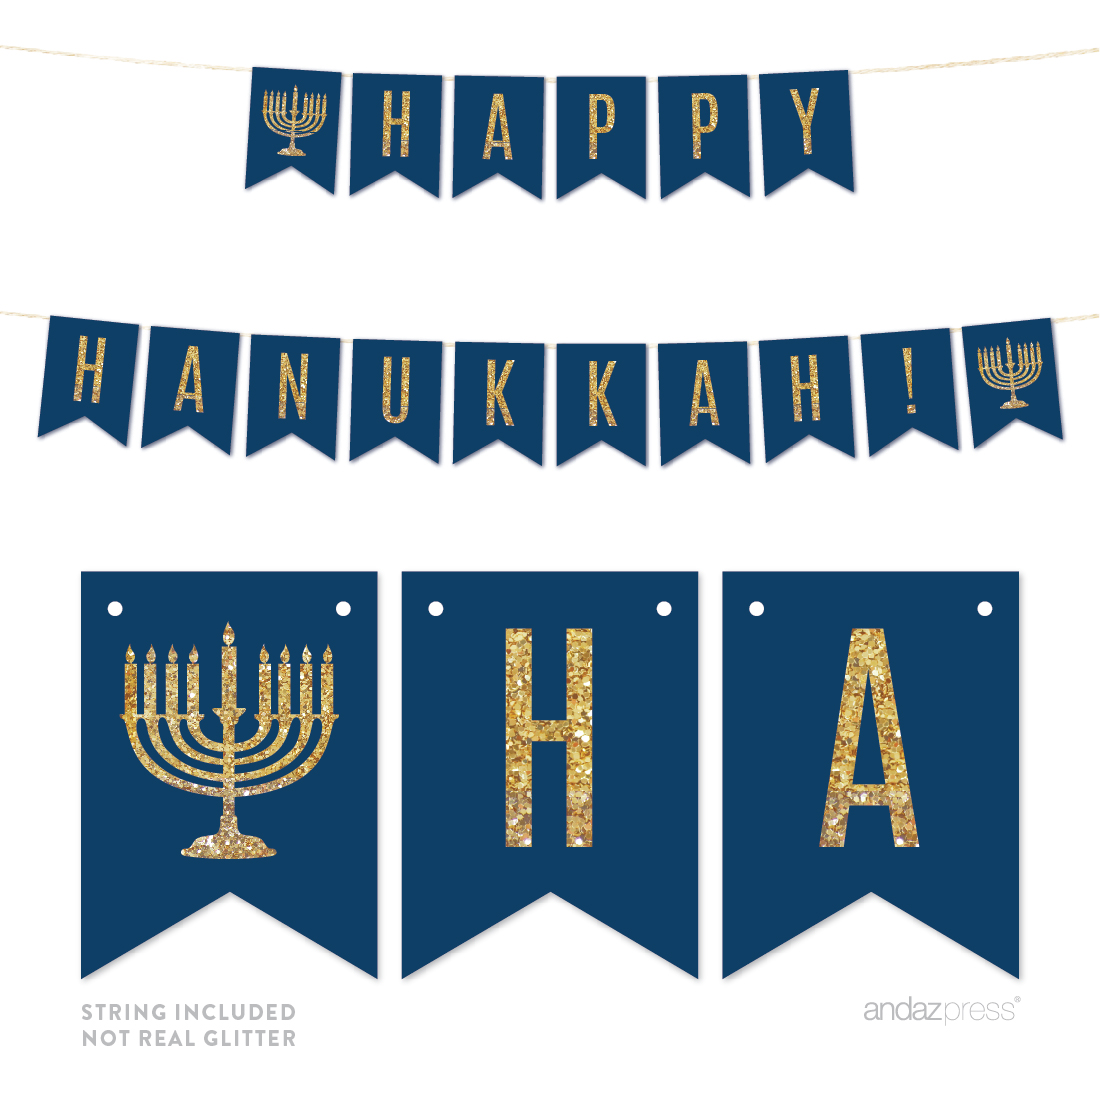 Happy Hanukkah! Gold Glitter Holiday Hanging Pennant Party Banner